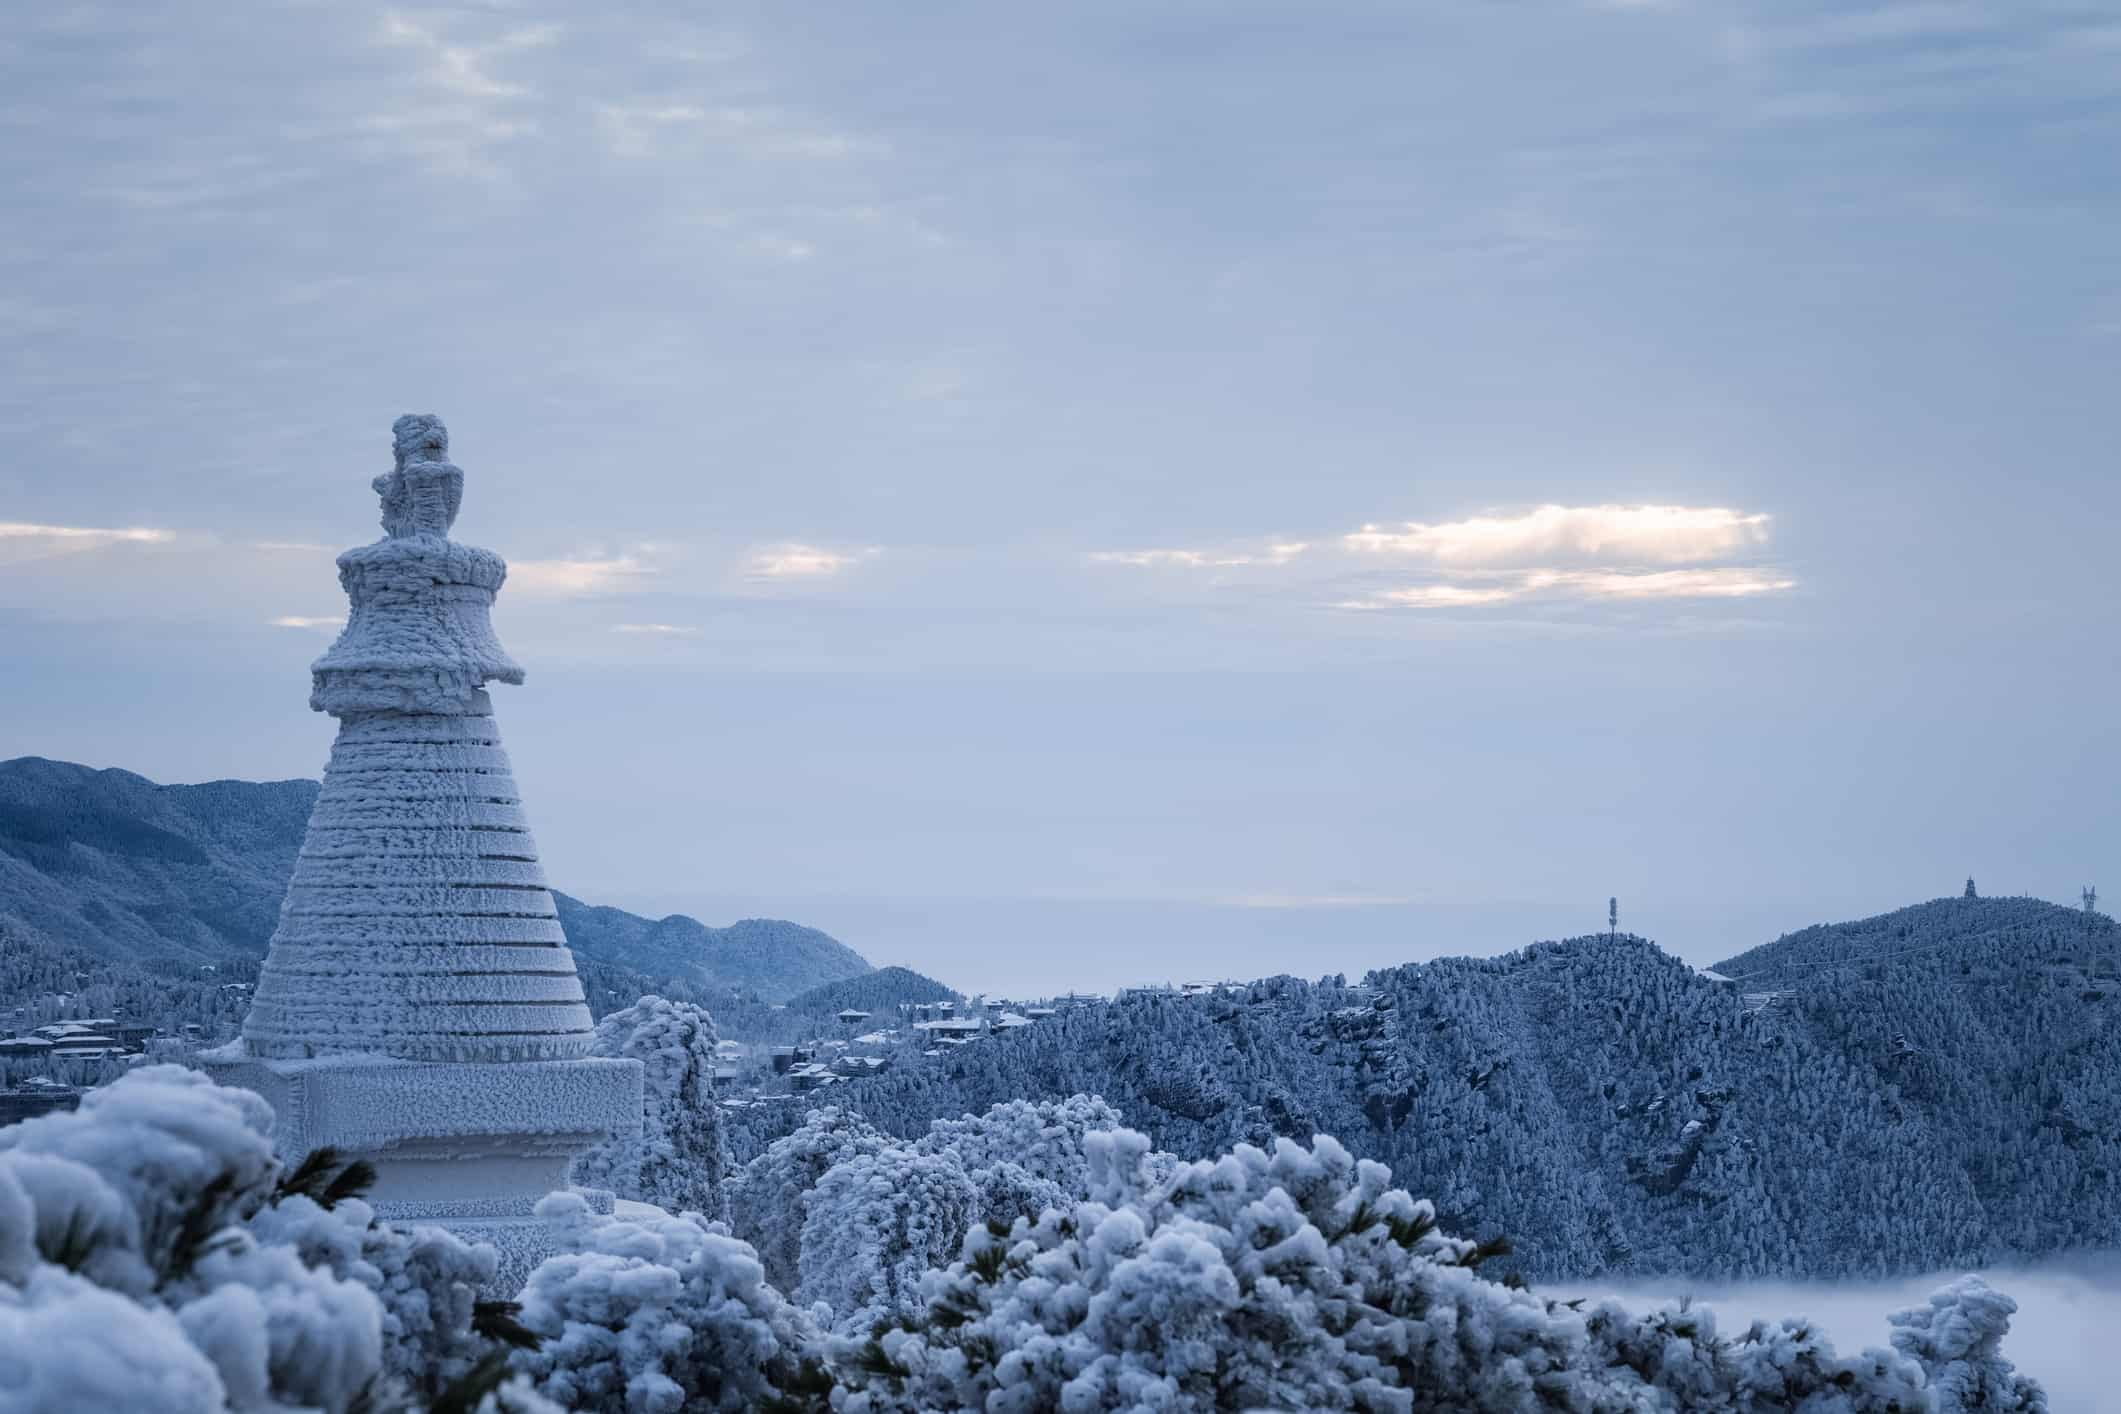 winter landscape in mount lushan, white pagoda is covered with frost